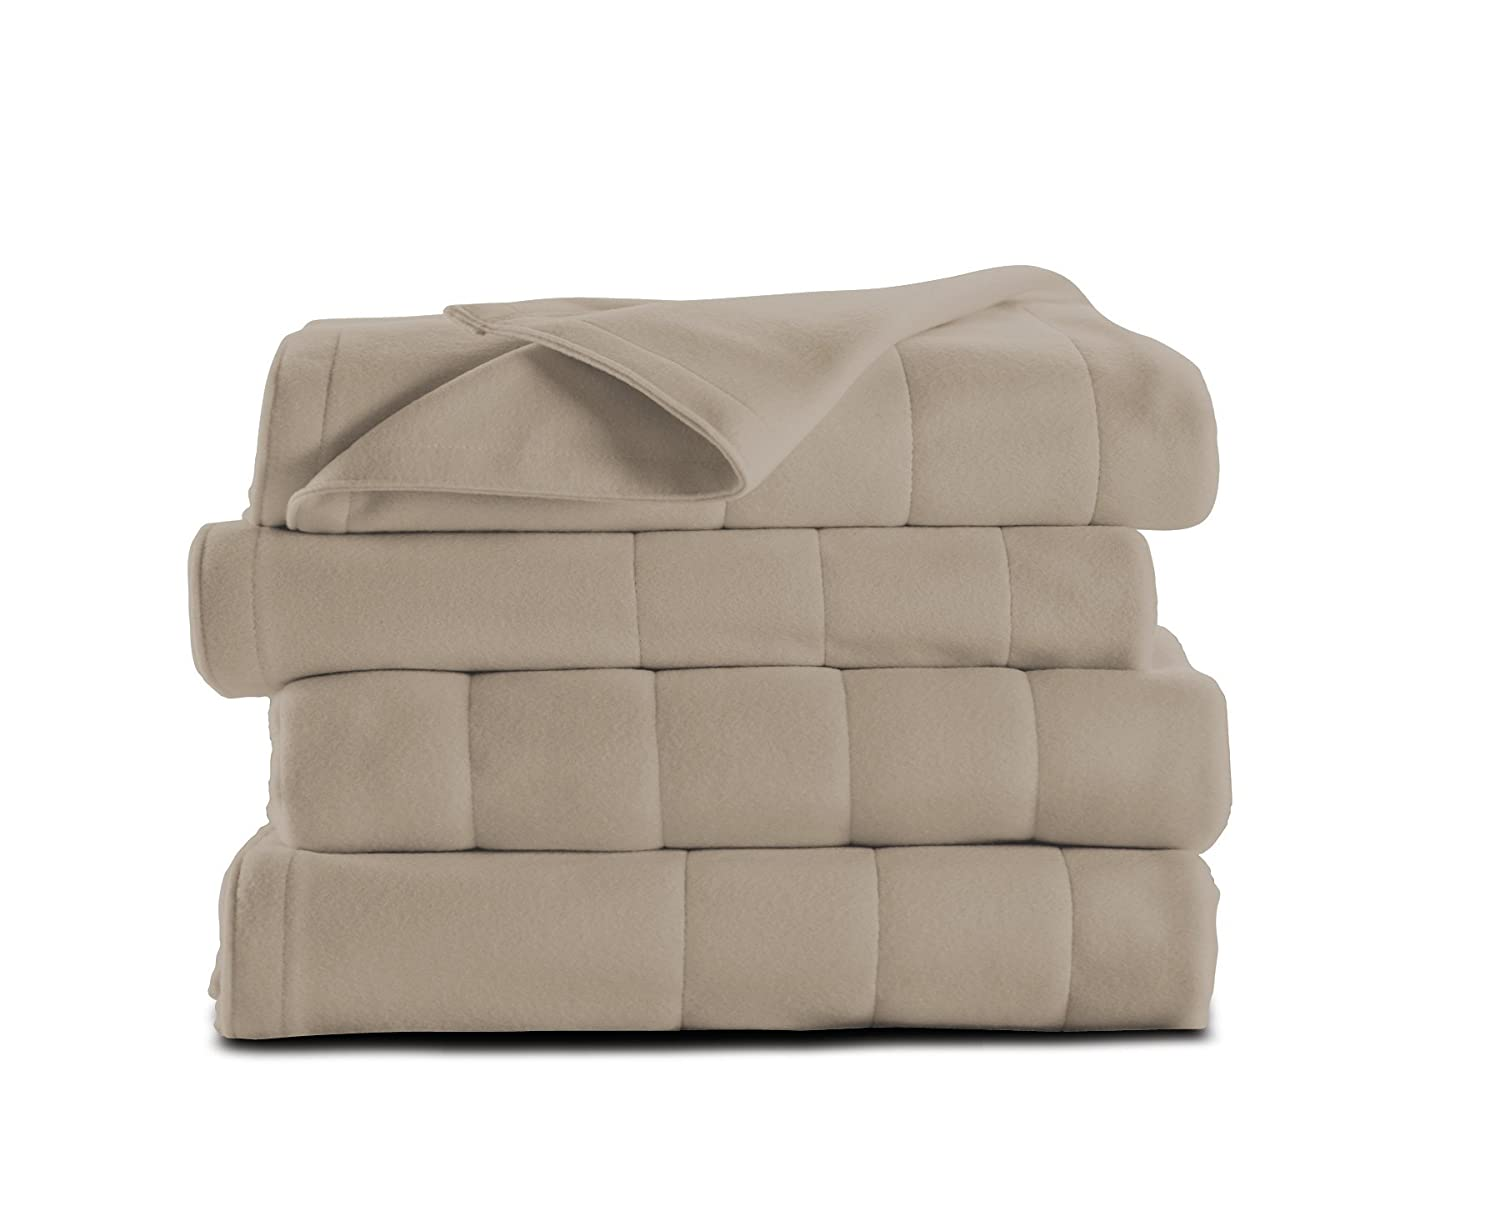 Sunbeam Microplush Heated Blanket, Twin, Mushroom, BSM9BTS-R772-16A00 BSM9KTS-R772-16A00